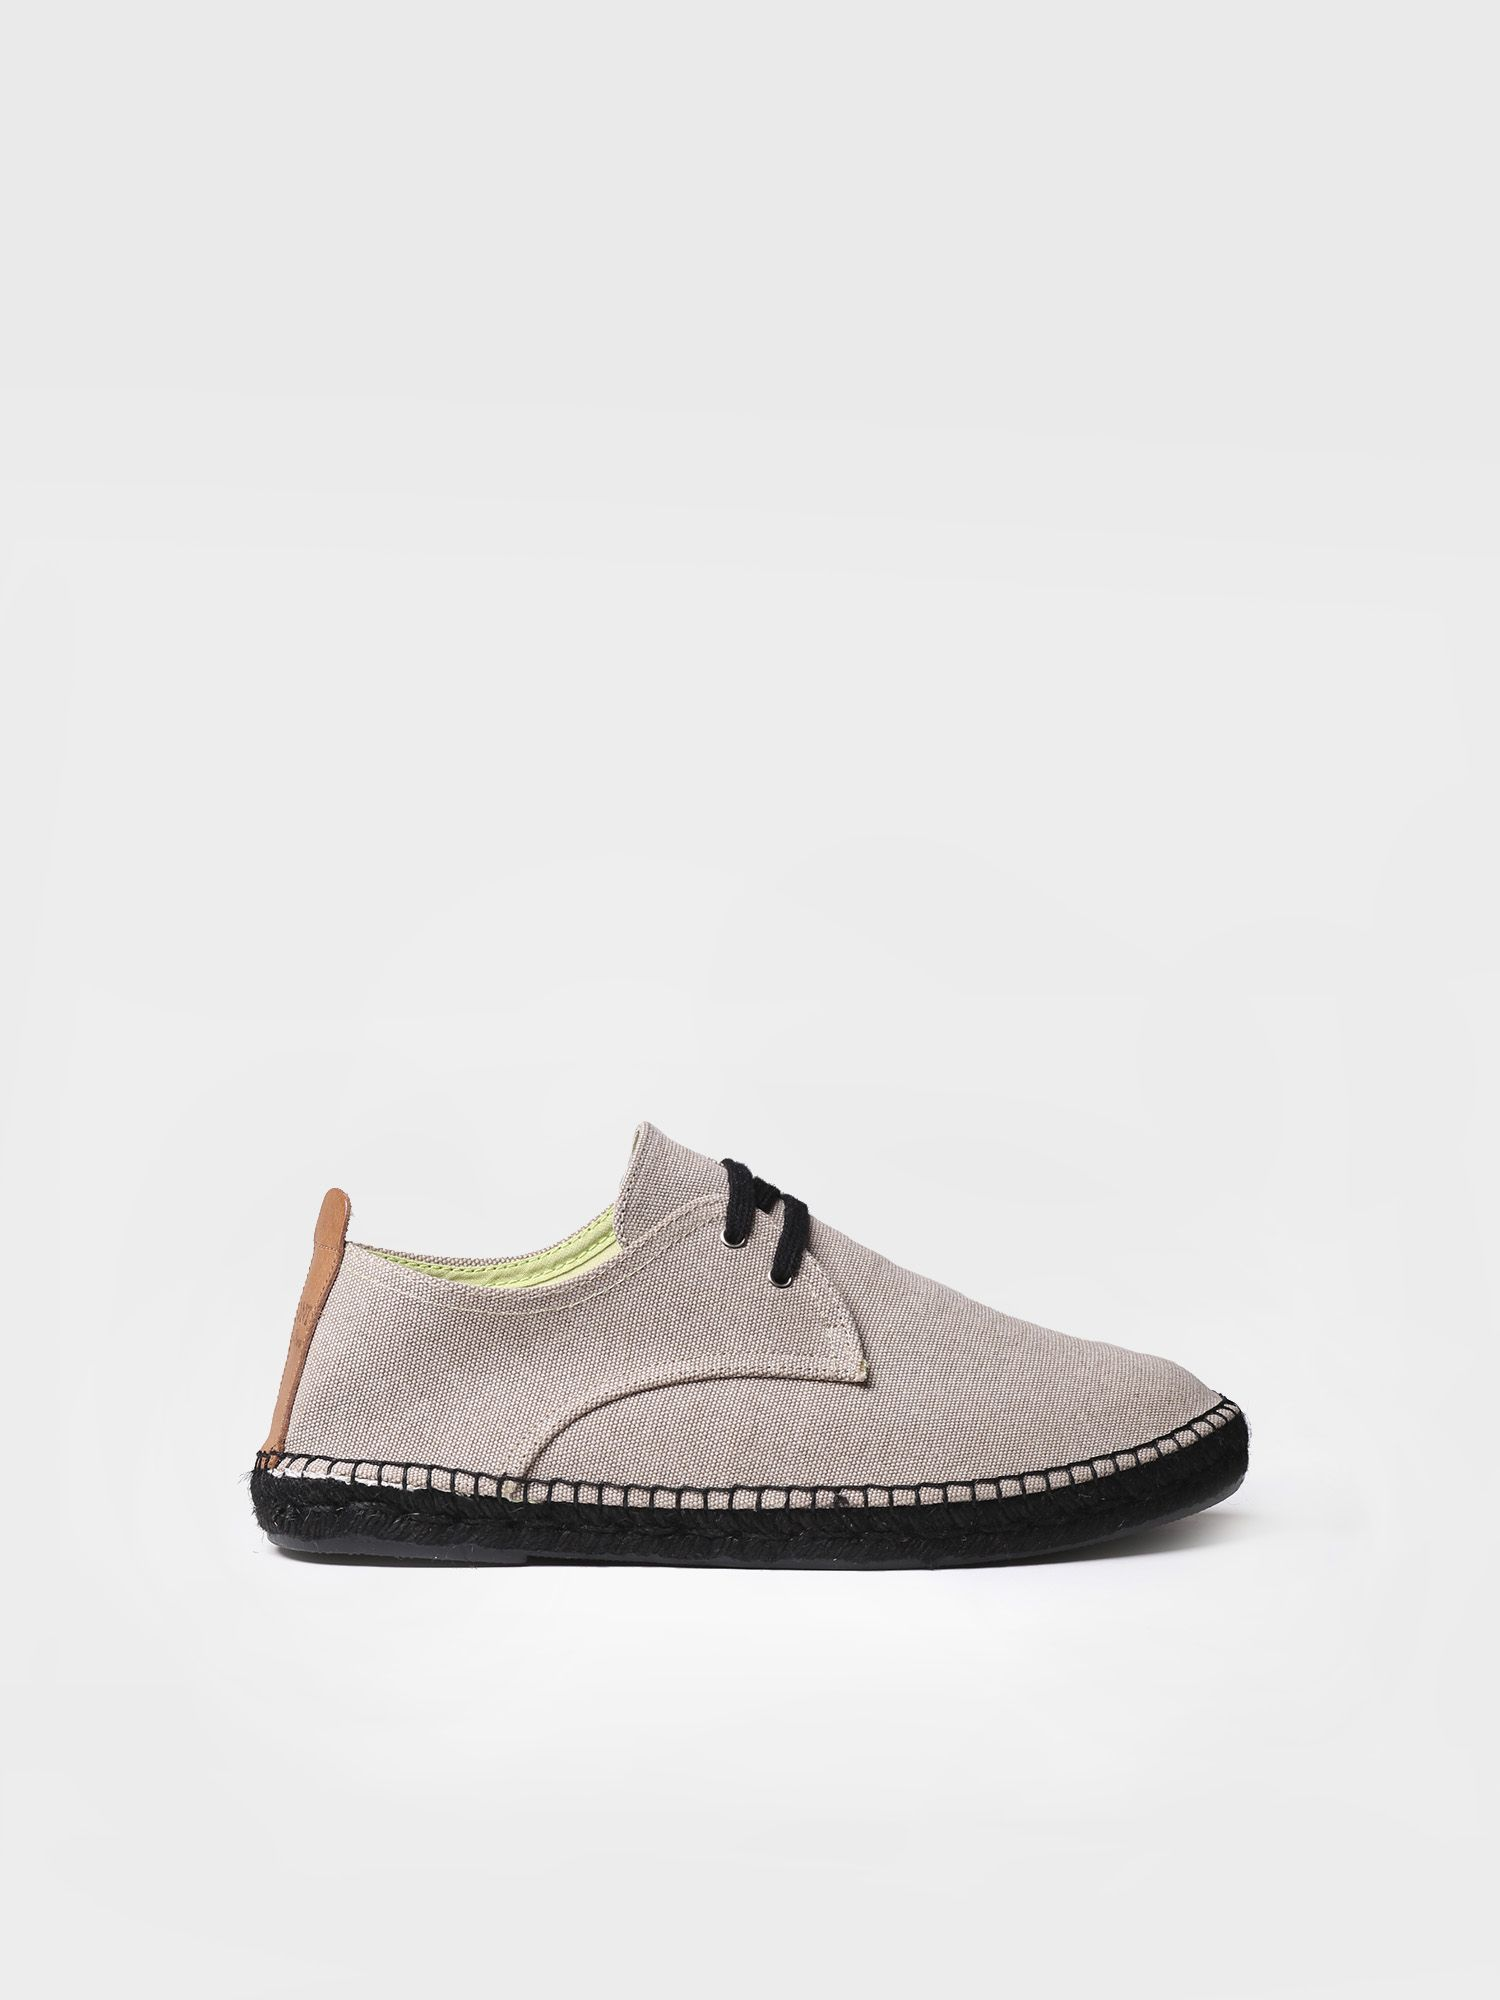 Lace up espadrilles - DAVID-CT